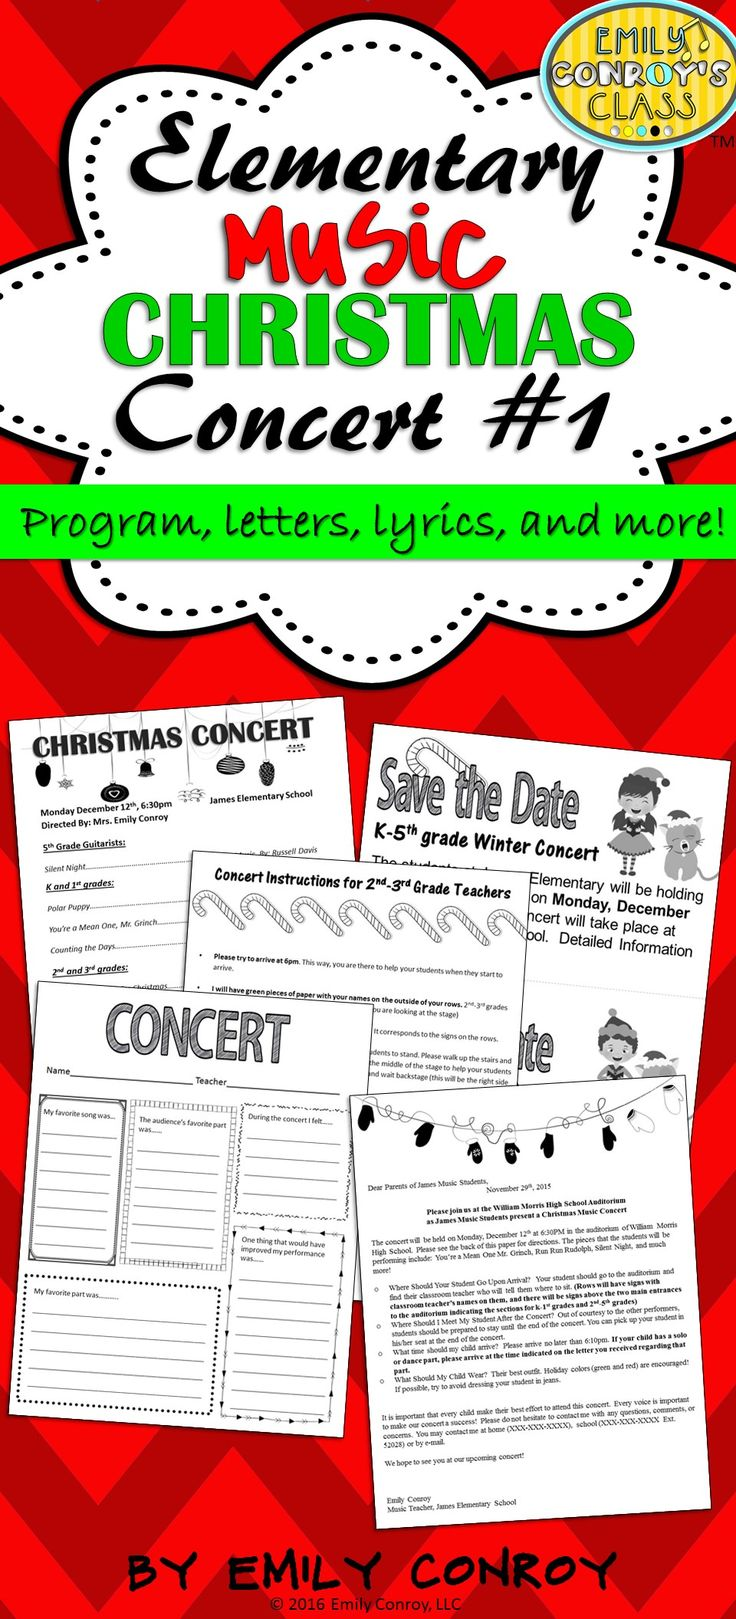 This Christmas Concert planning set contains 1 program with song ideas, 1 save the date, letters to parents, a seating chart example, and other documents to ease the stress of planning your next winter concert!